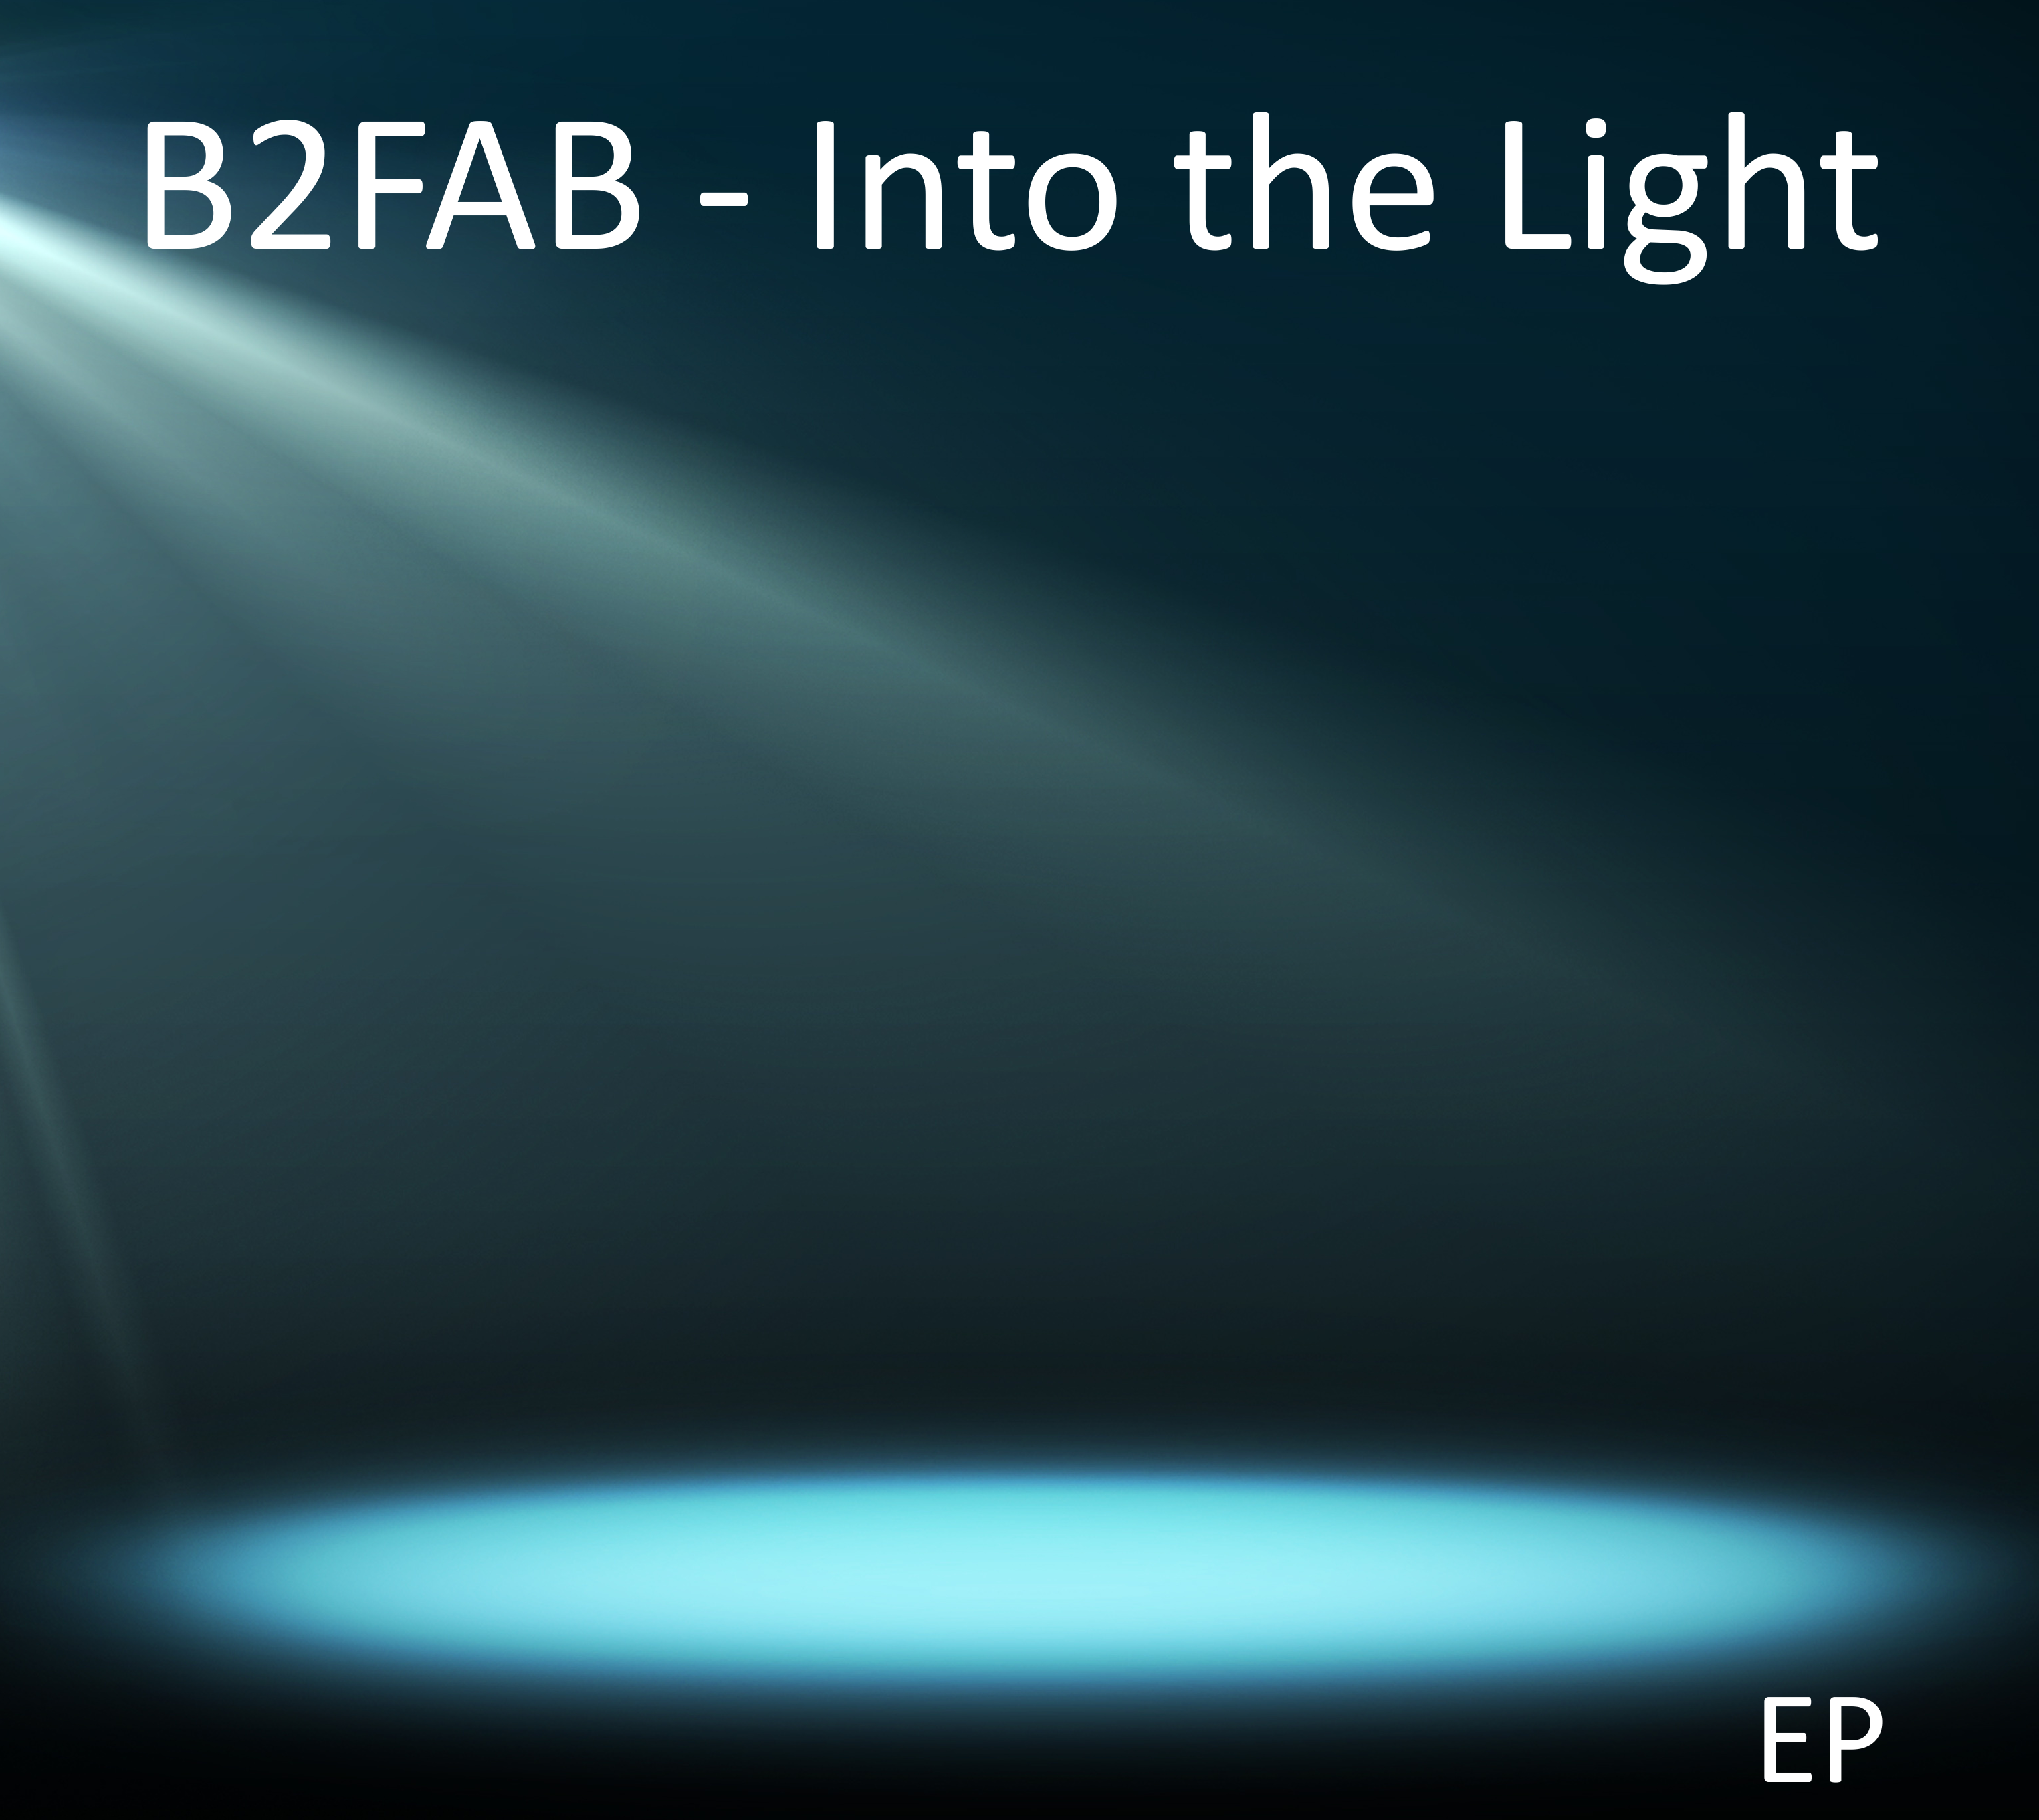 Into the Light (EP)